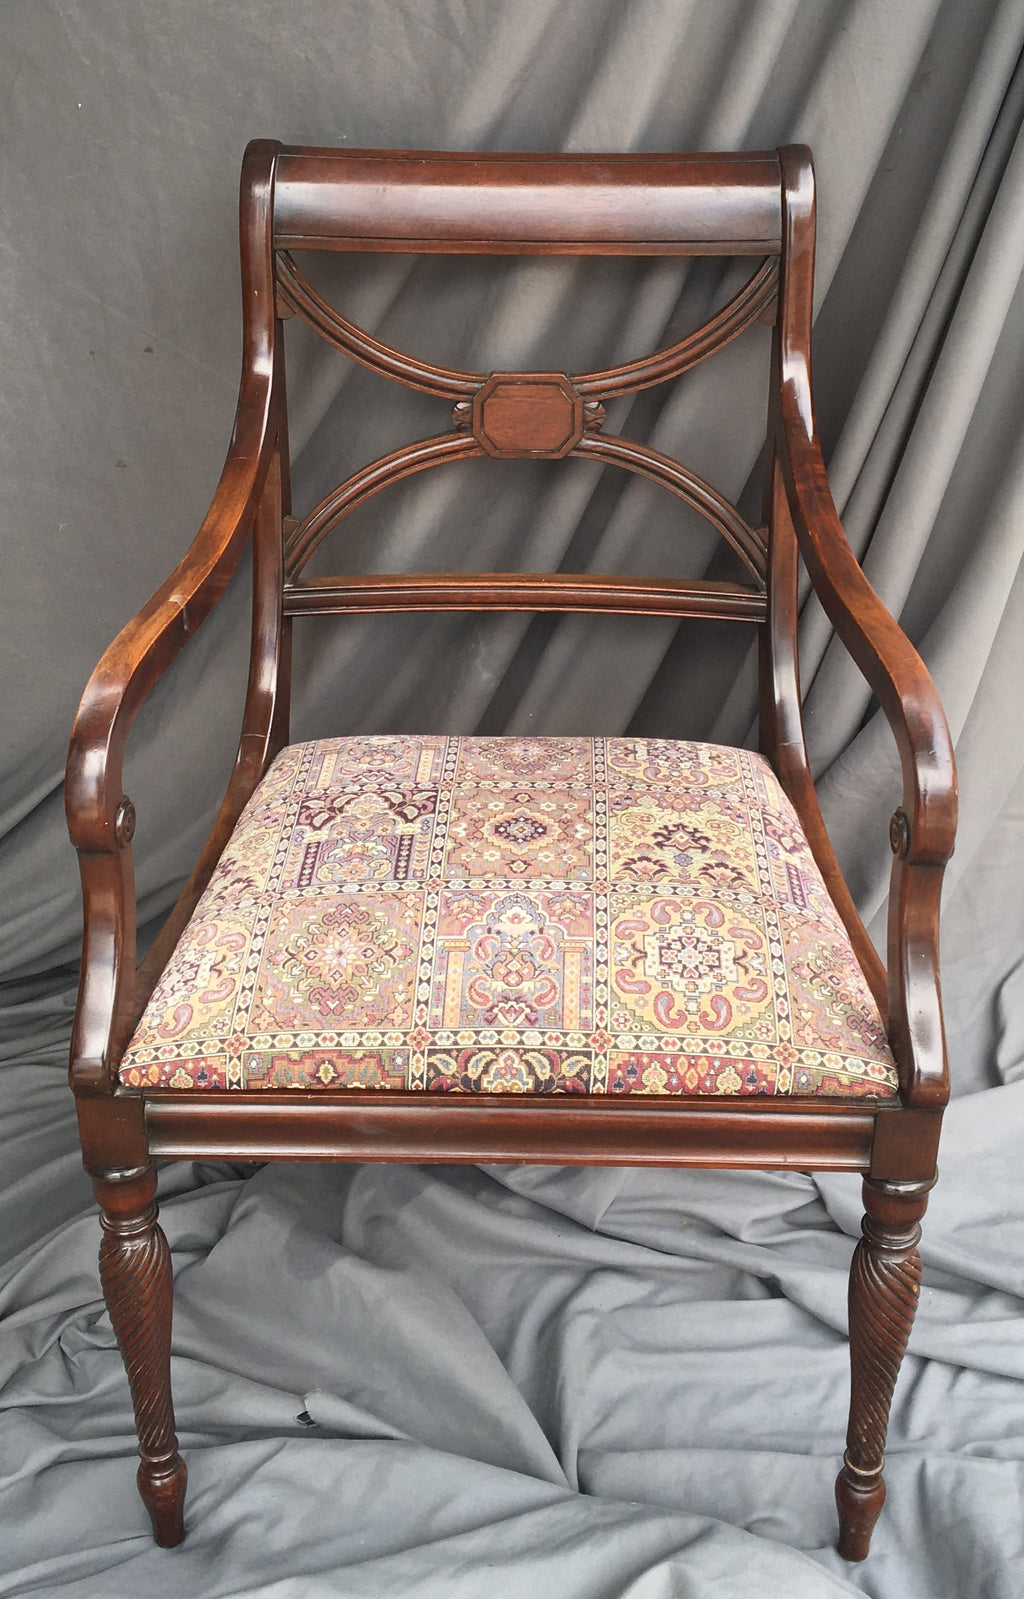 MAHOGANY ARM CHAIR WITH SEAT EMBROIDER